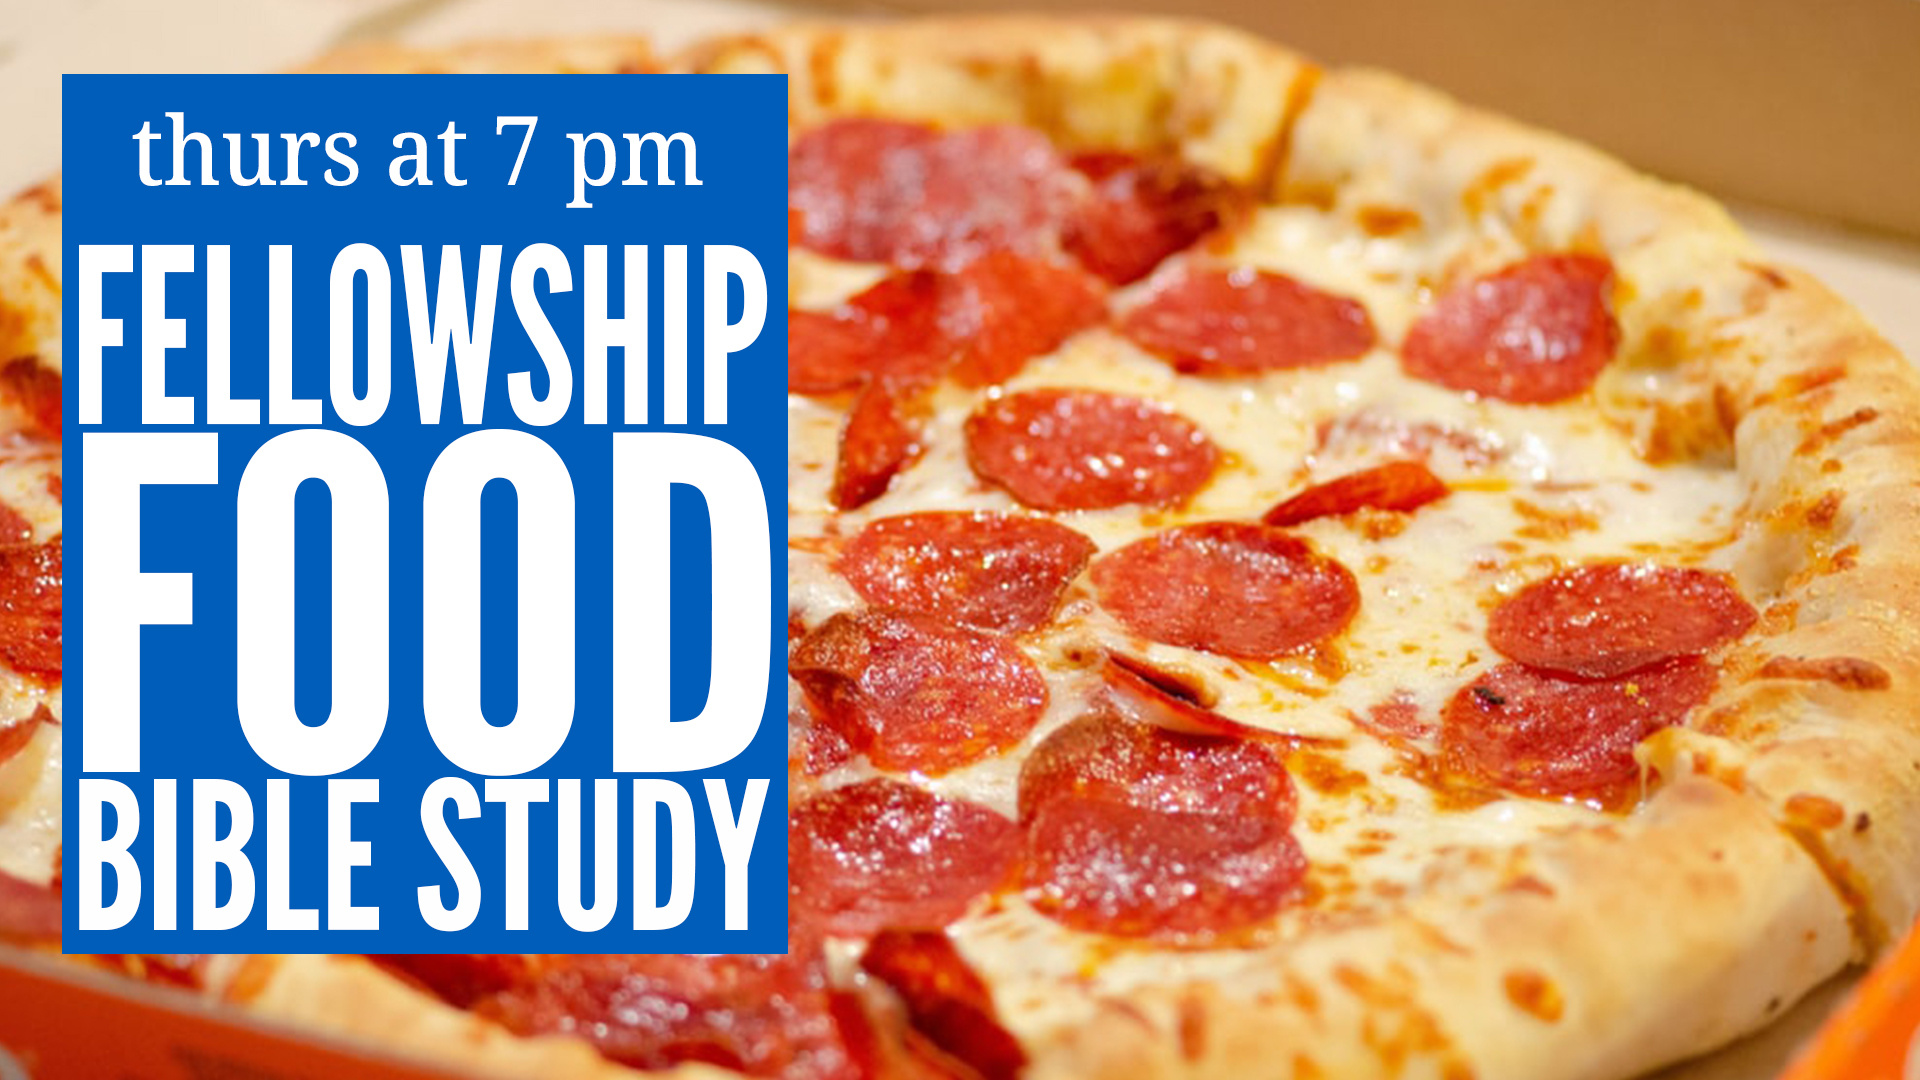 We invite you to join us Thursdays at 7 PM for fellowship, food and study in God's Word.